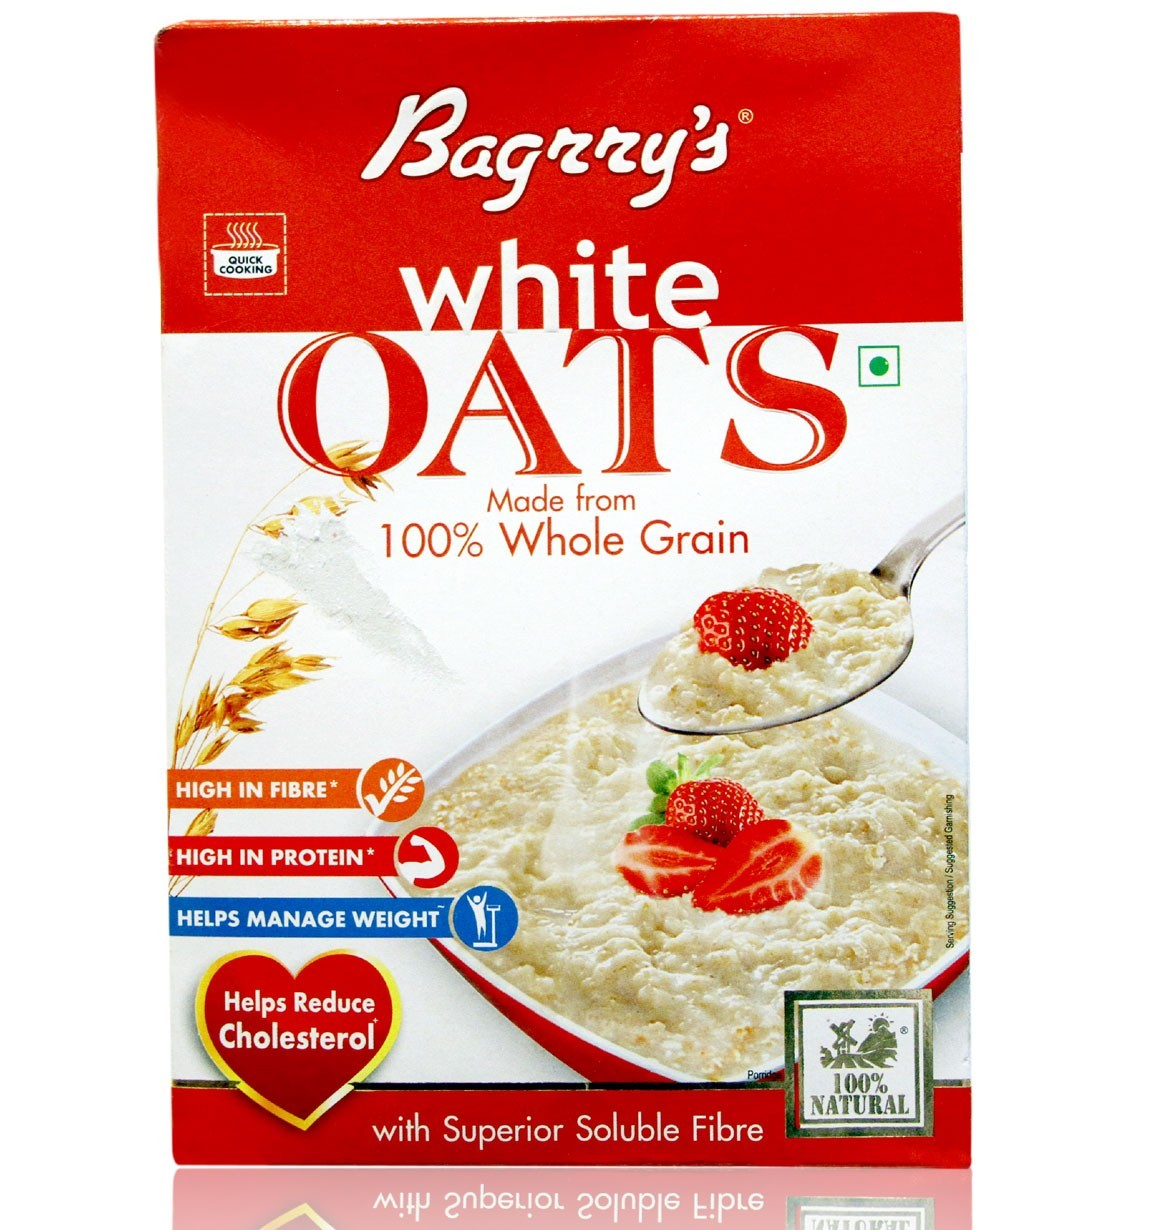 White Oats for sale